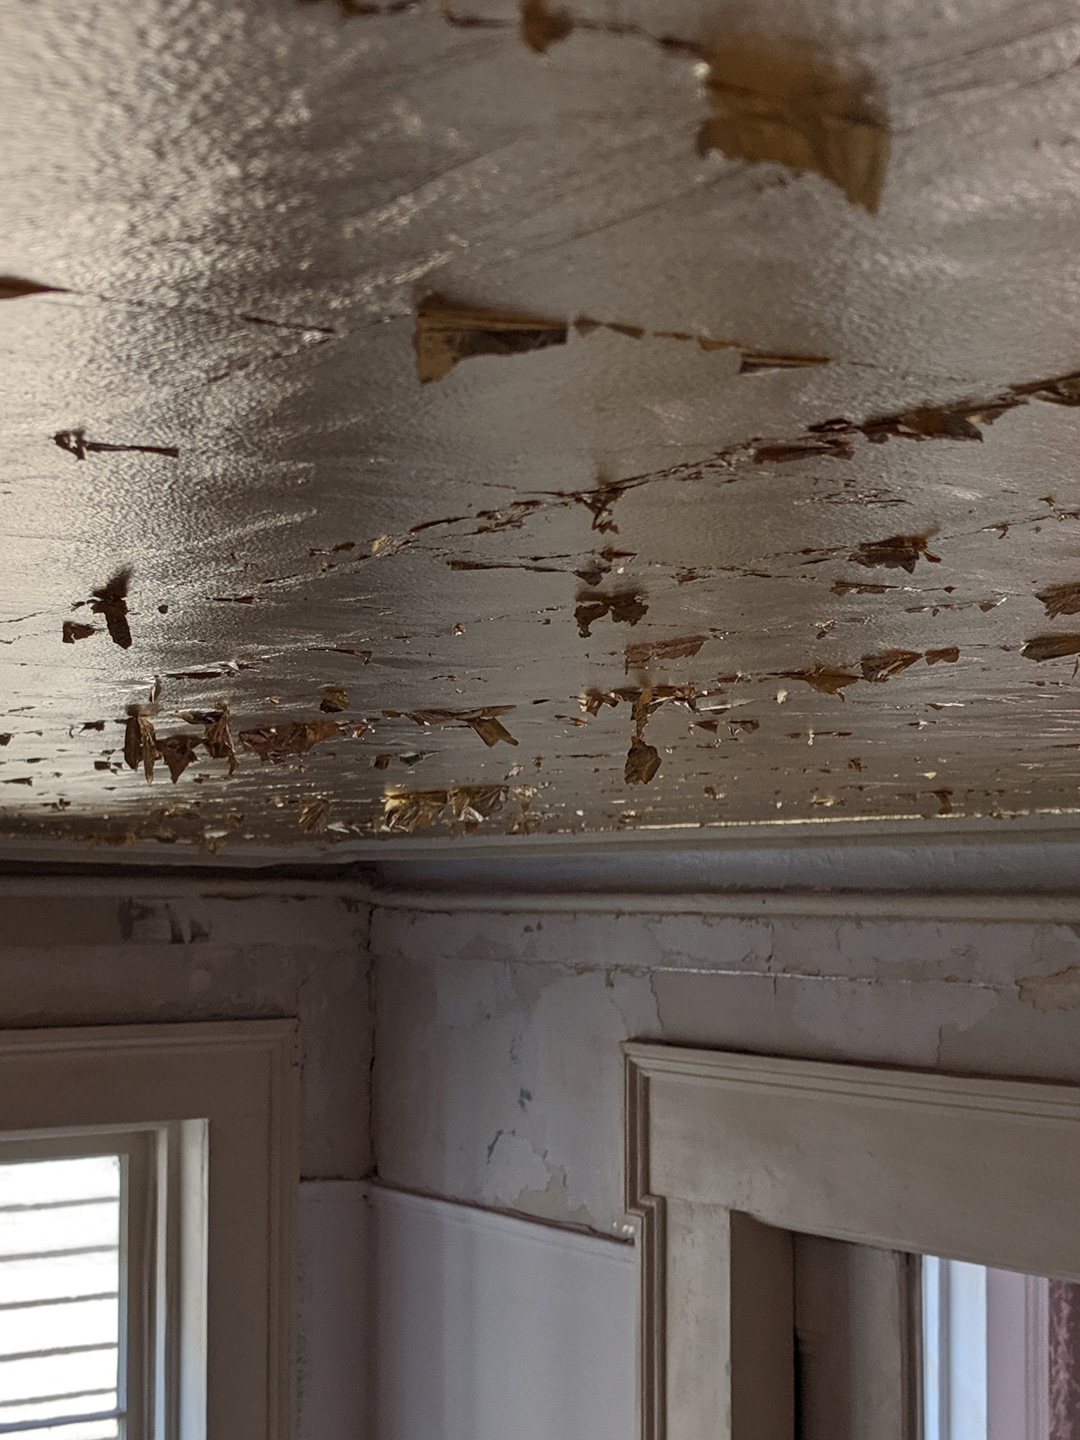 Sylvia T Designs – French Quarter Creole Cottage – Dramatic Plaster Finishes and Gold Leaf Ceilings – Gold leaf ceilings in progress.